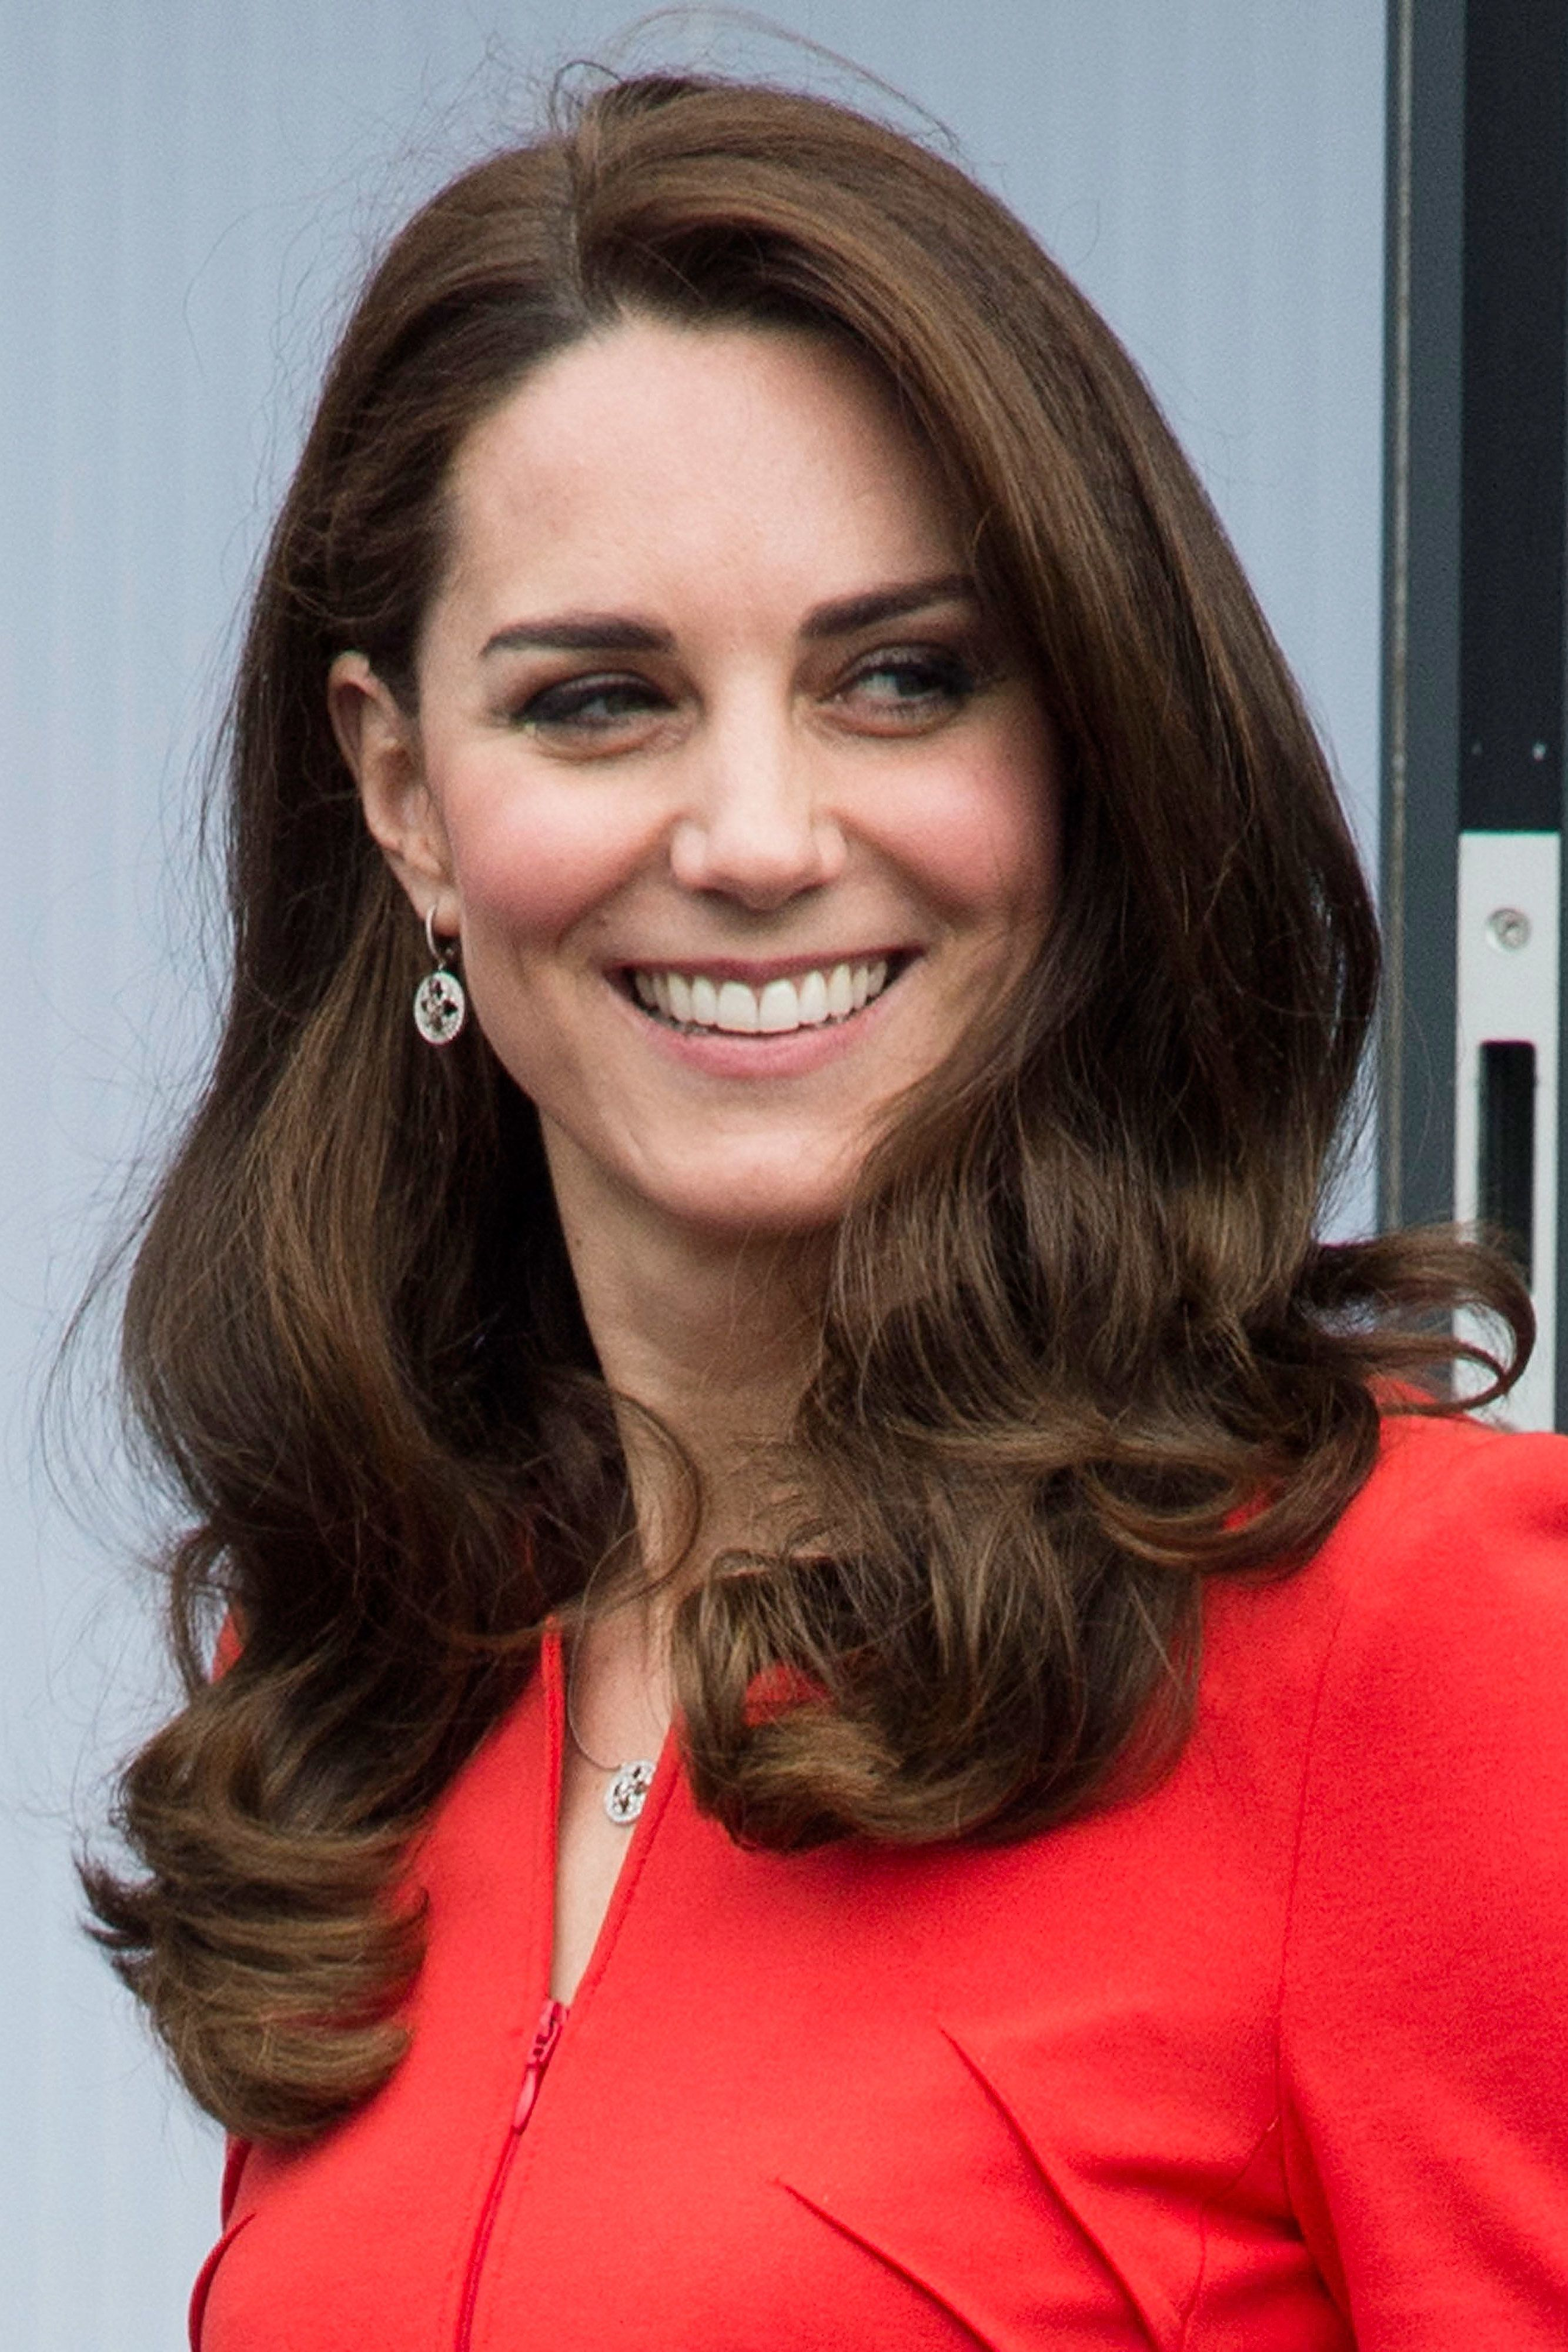 20 Times The Duchess Of Cambridge Rocked Her Signature Shade: Regal